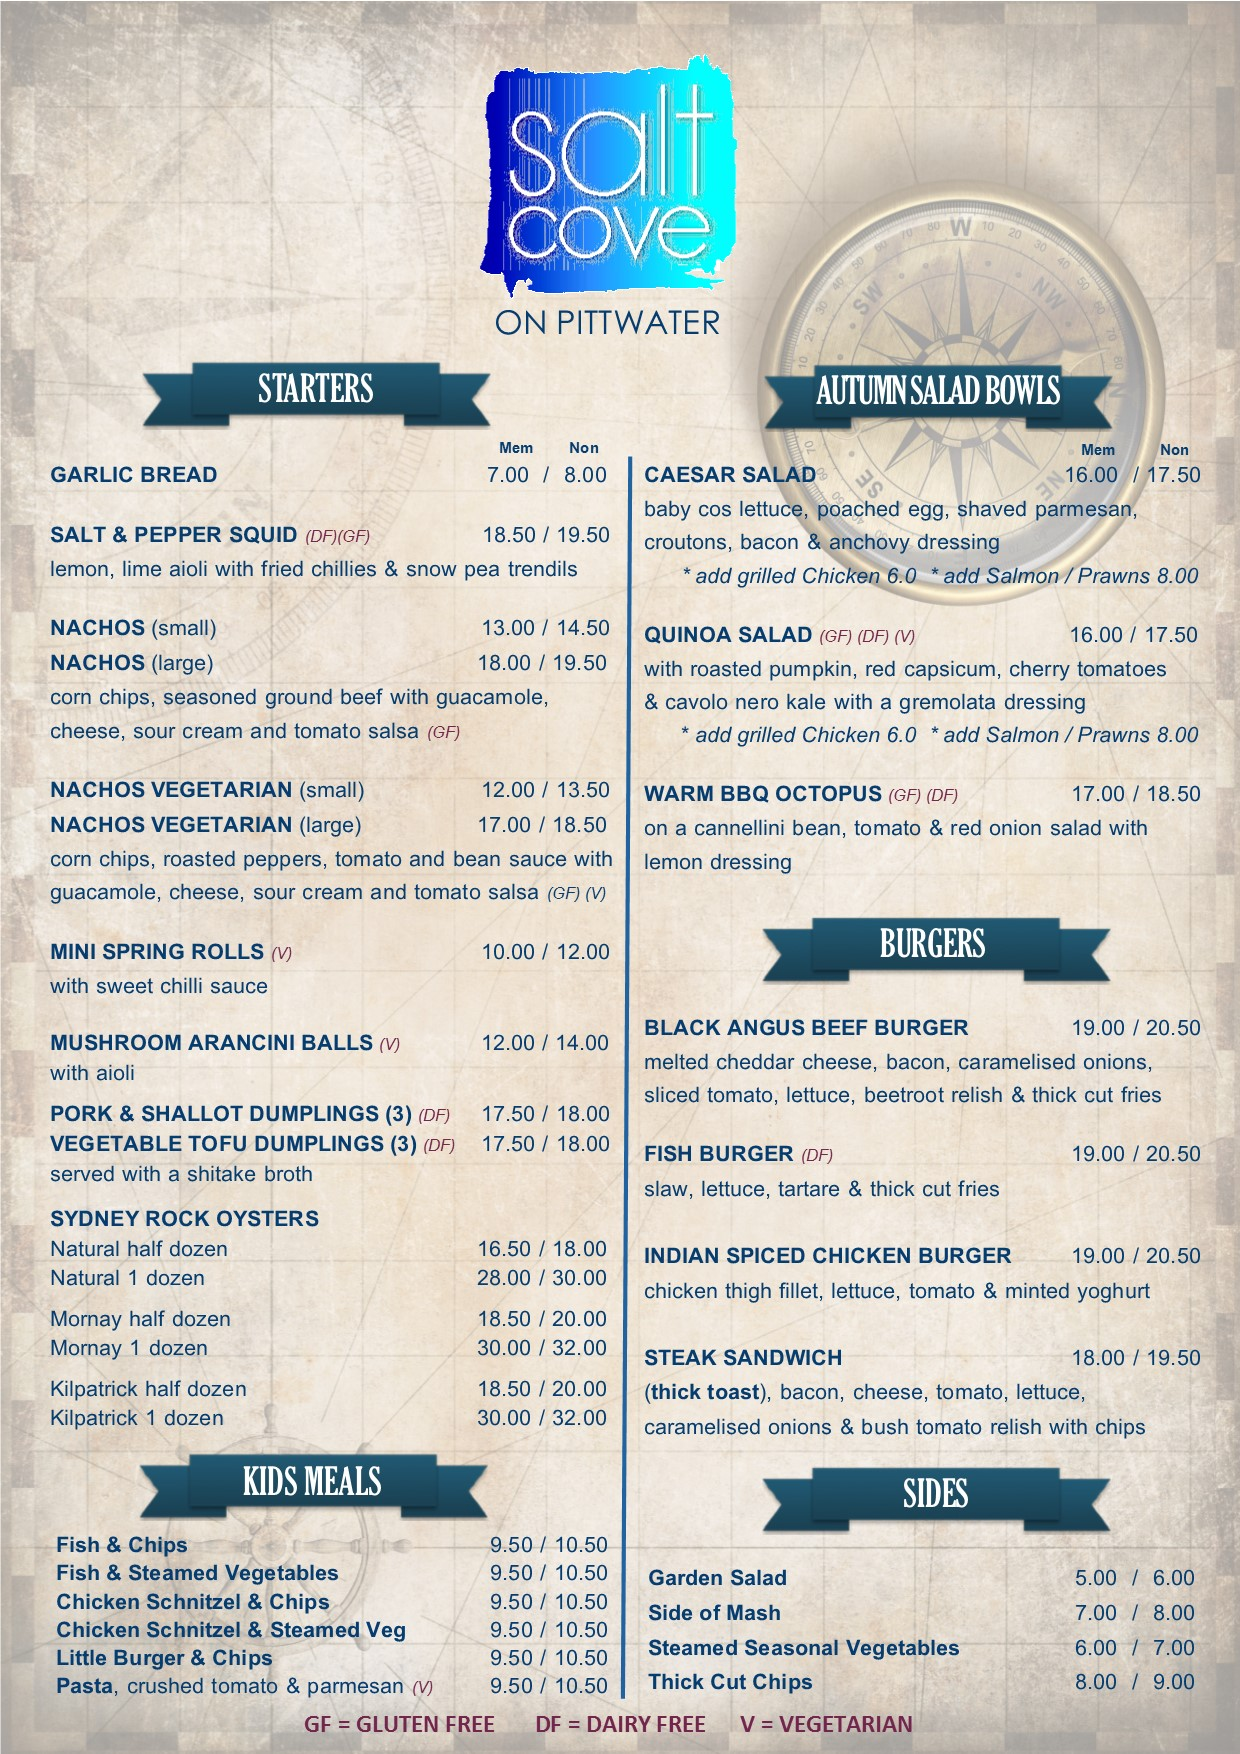 SALT COVE FINAL A4 MENU PG 1 WEB